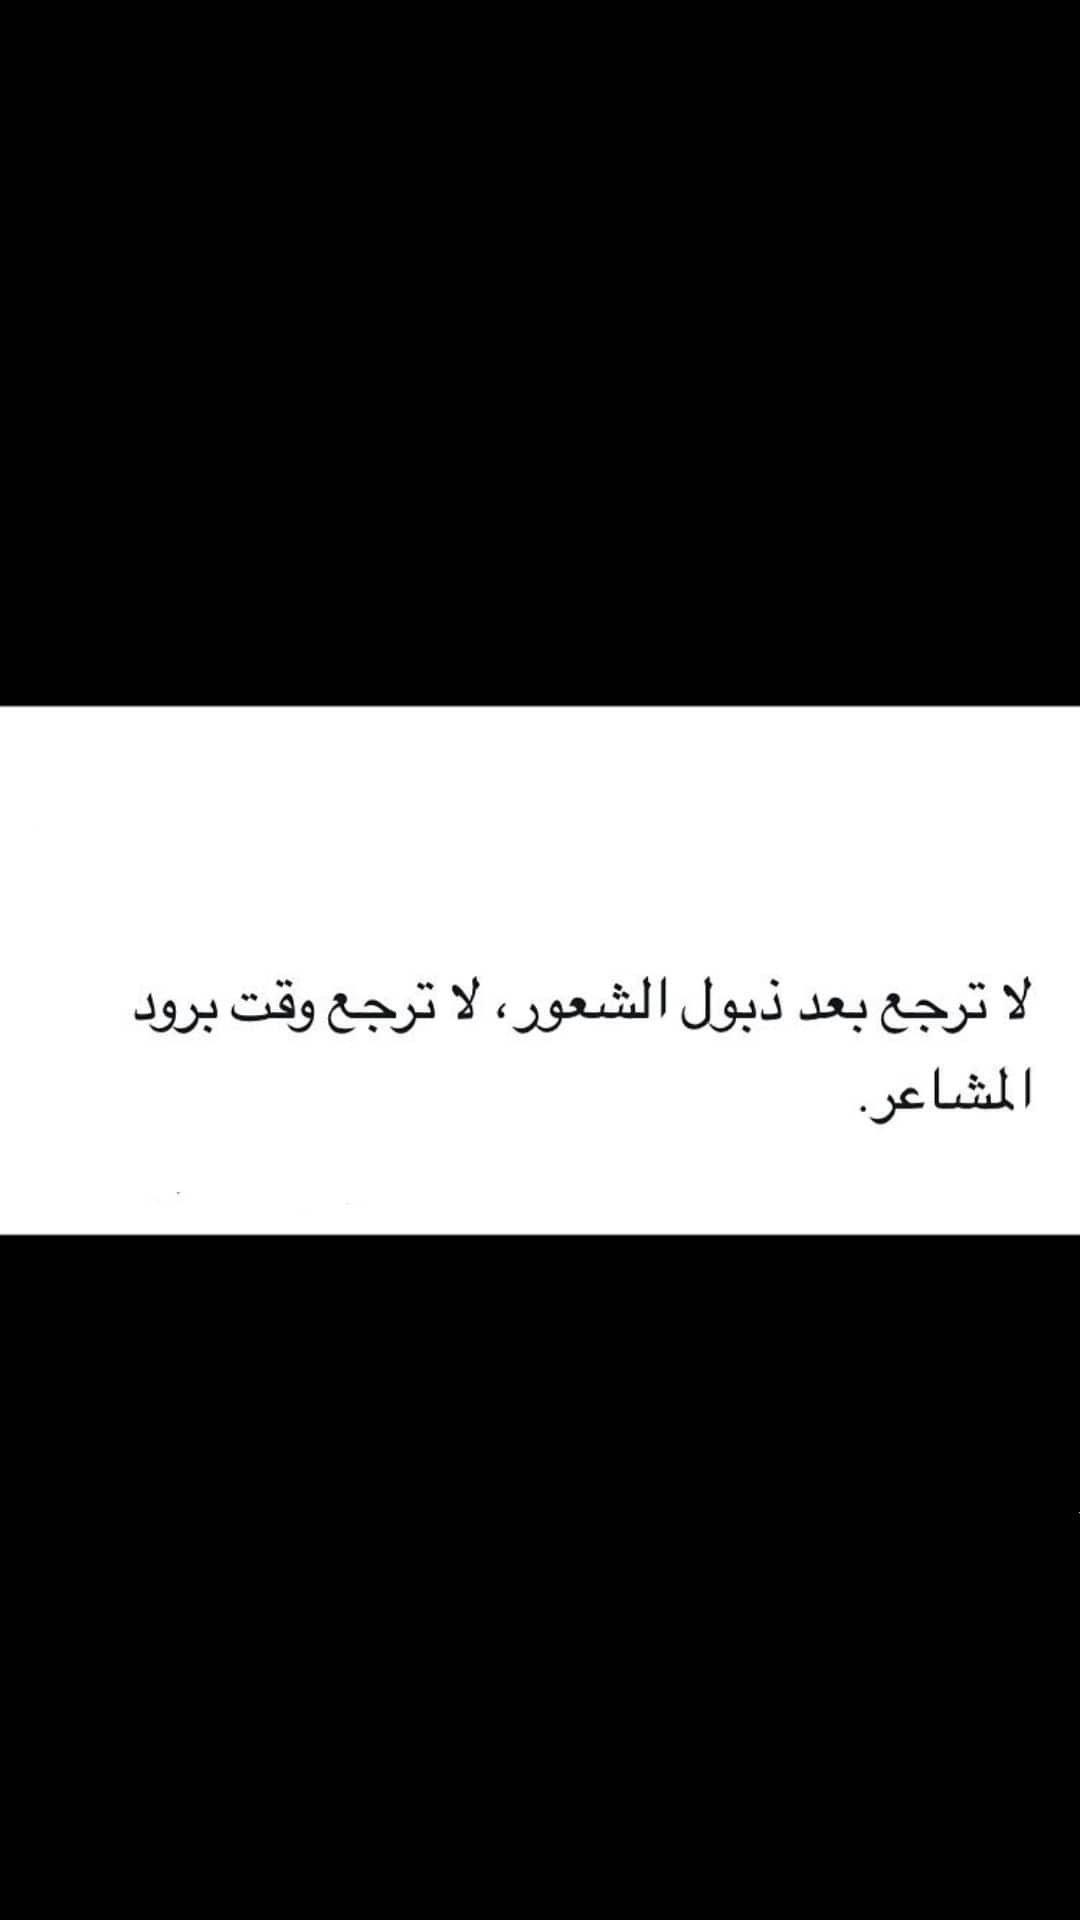 Pin By Elif On Qoutes Arabic Love Quotes Arabic Quotes Arabic Words